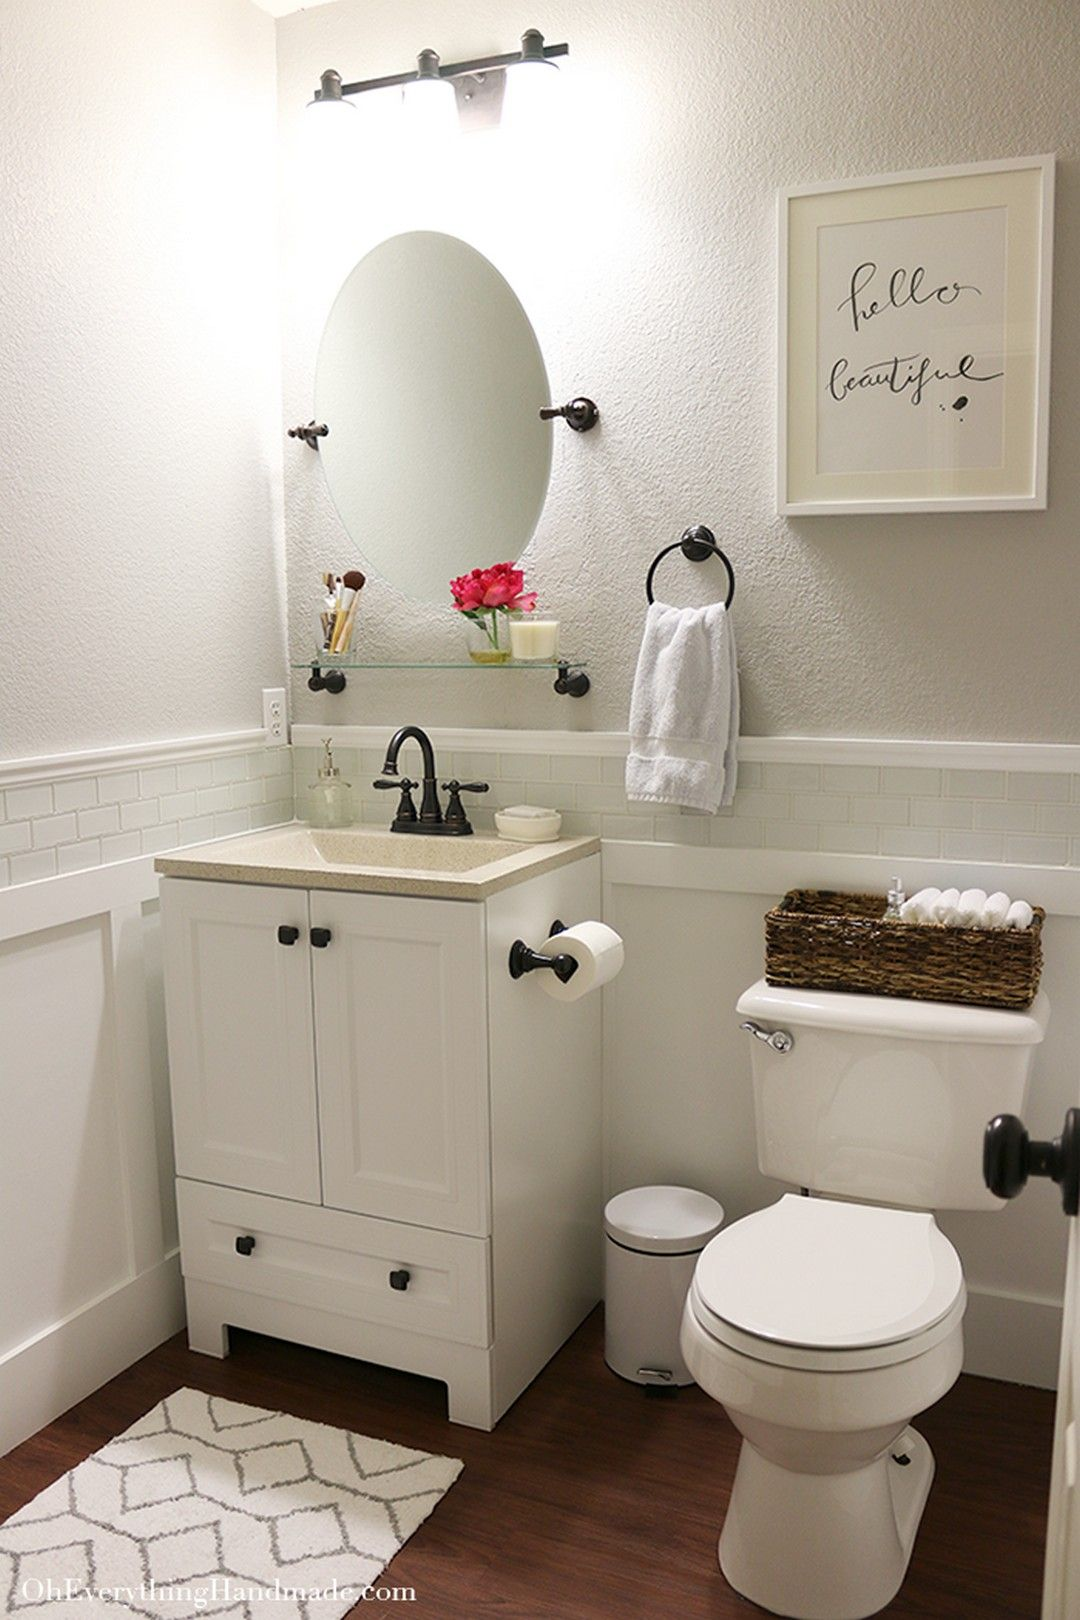 Nice 99 small master bathroom makeover ideas on a budget http www